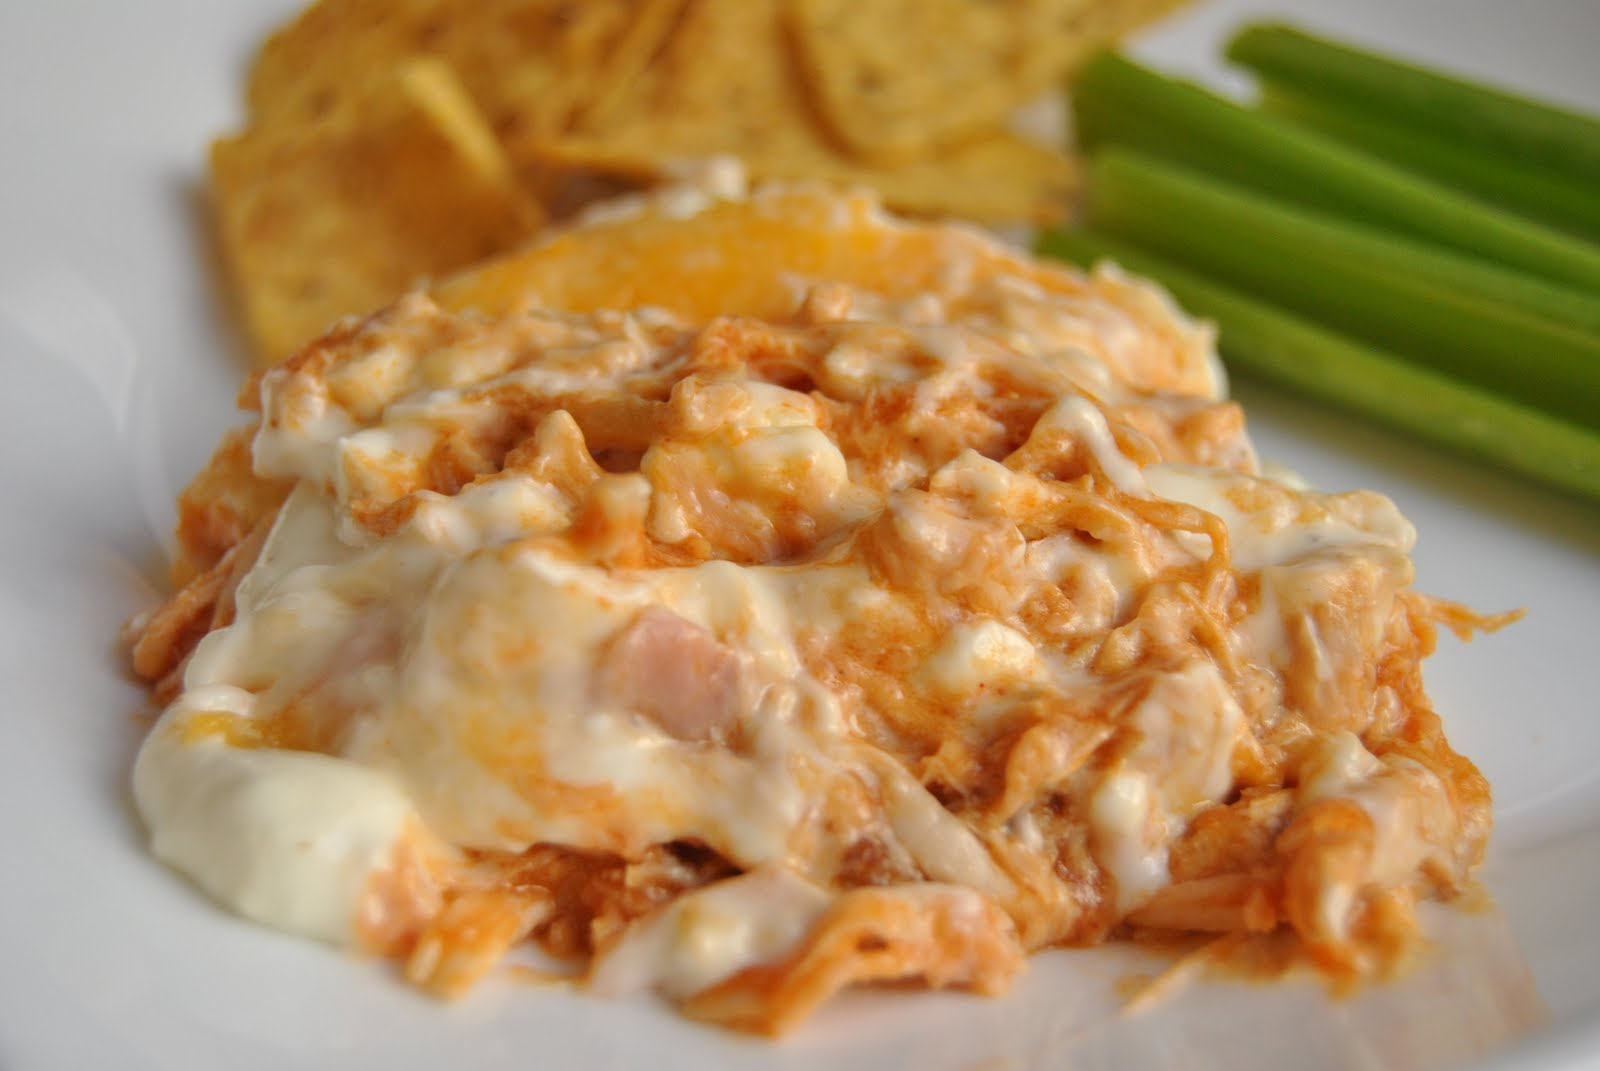 Malikala's Ono Kine Grinds: Buffalo Chicken Dip